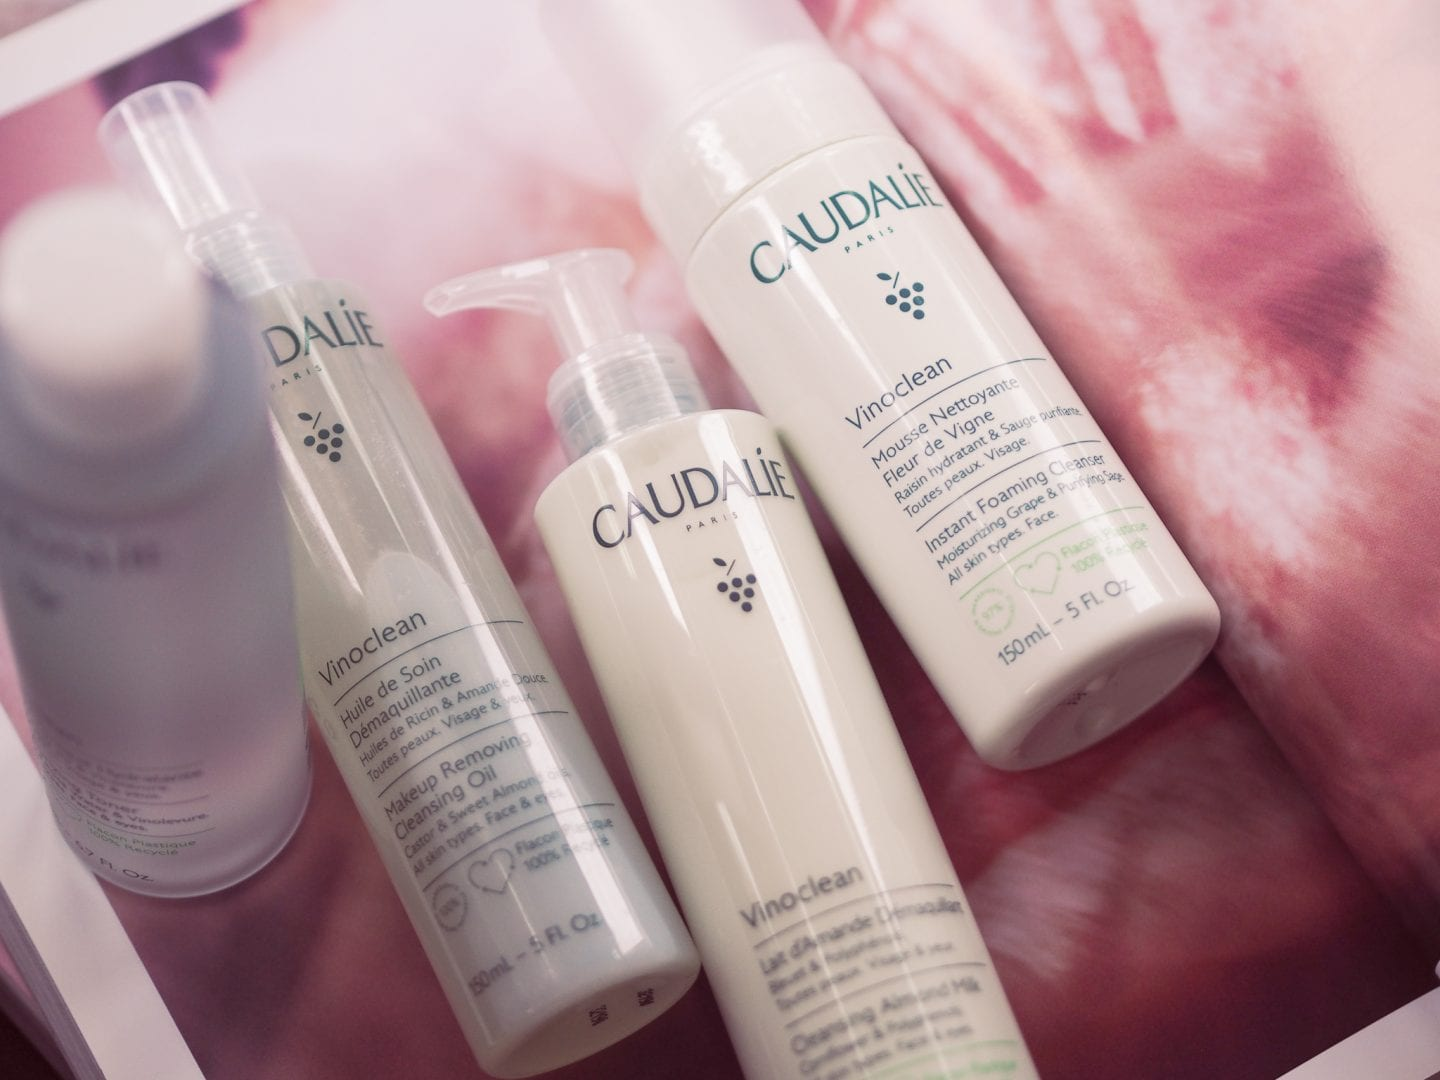 Caudalie: The Vinoclean Collection